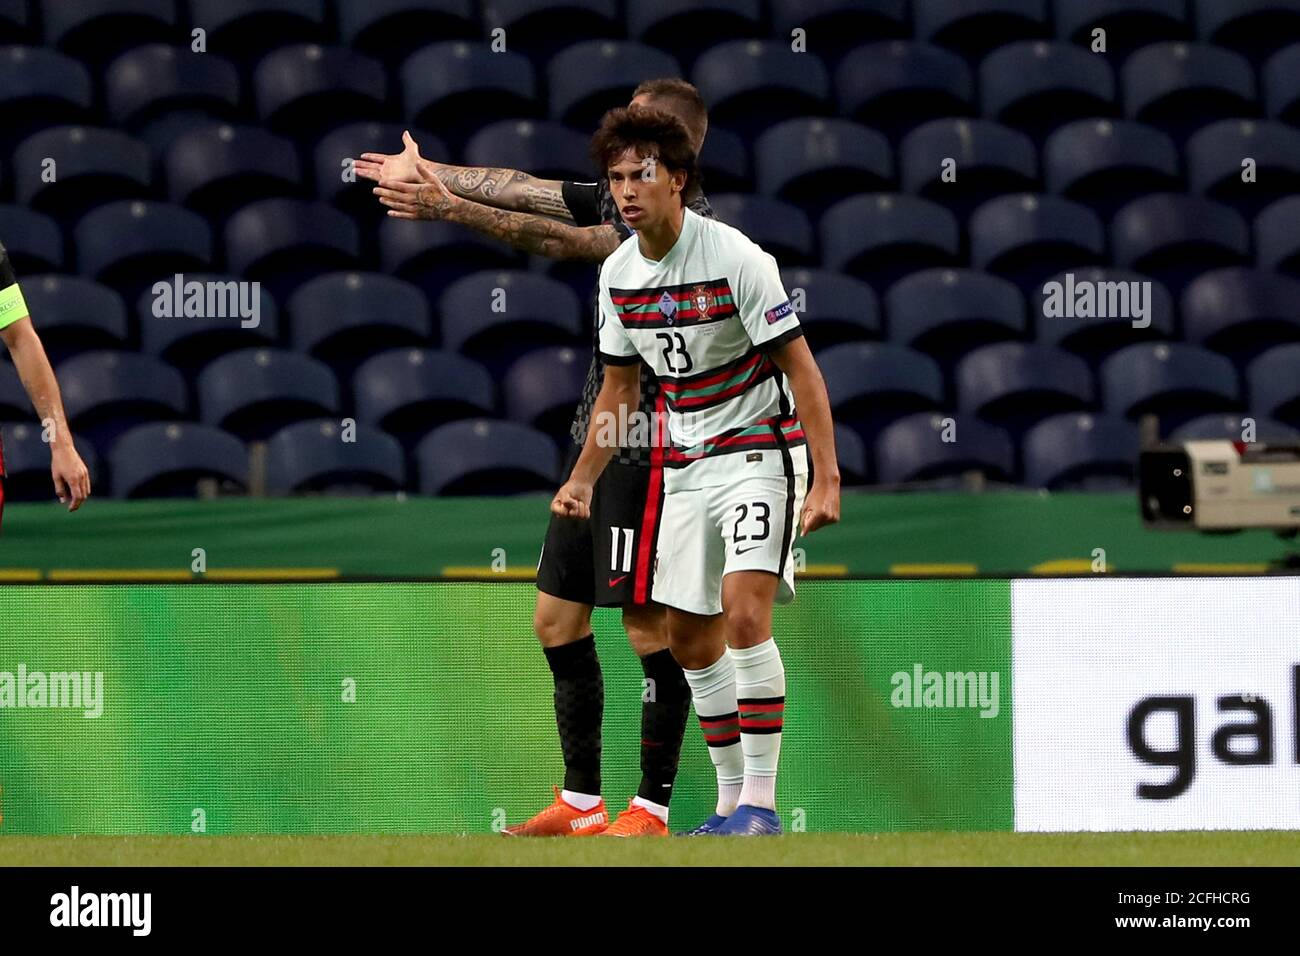 Porto 5th Sep 2020 Joao Felix Front Of Portugal Celebrates After Scoring During The Uefa Nations